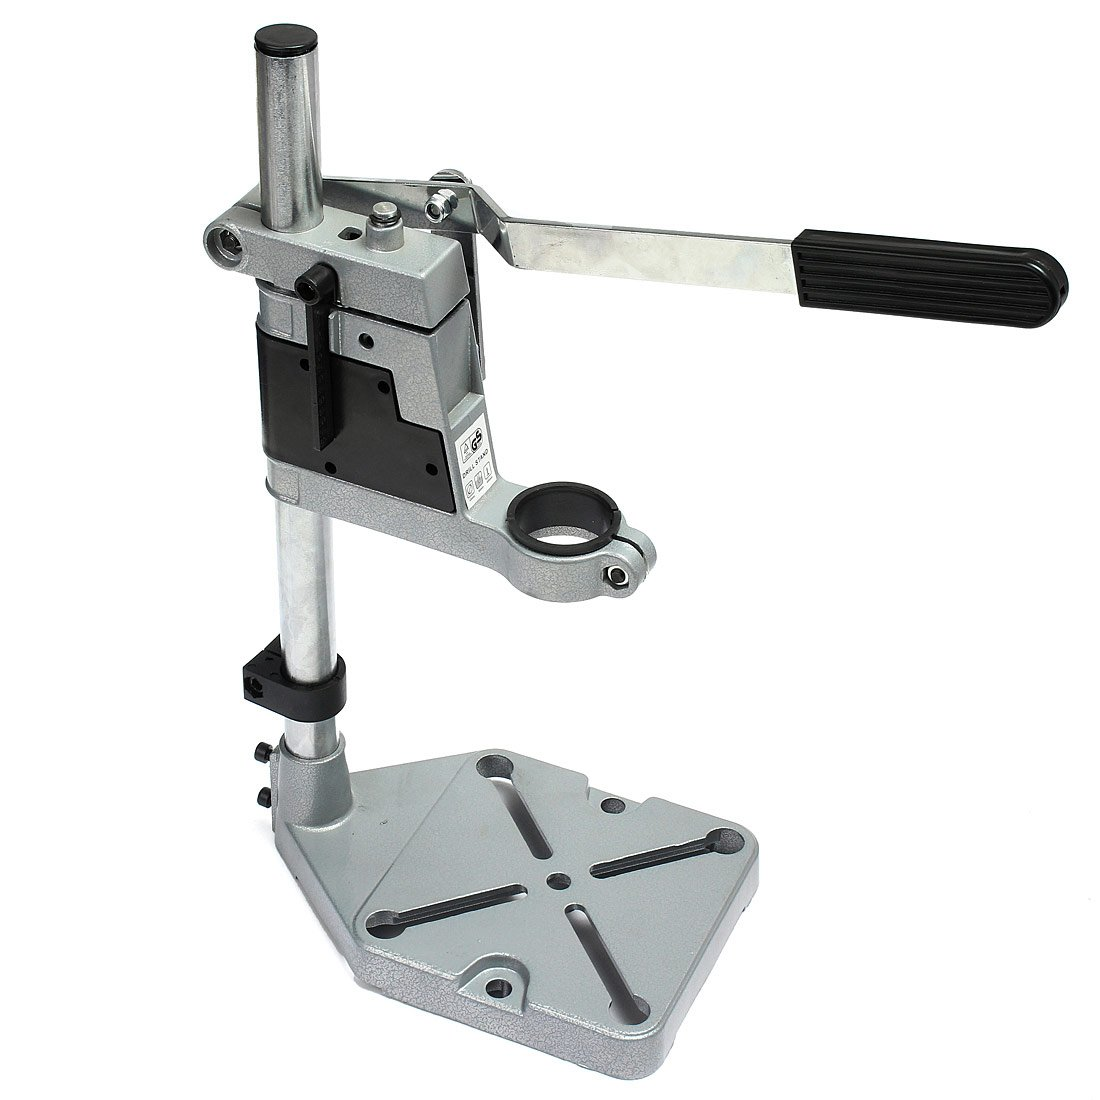 Bench Drill Press Stand Workbench Repair Tool Clamp For